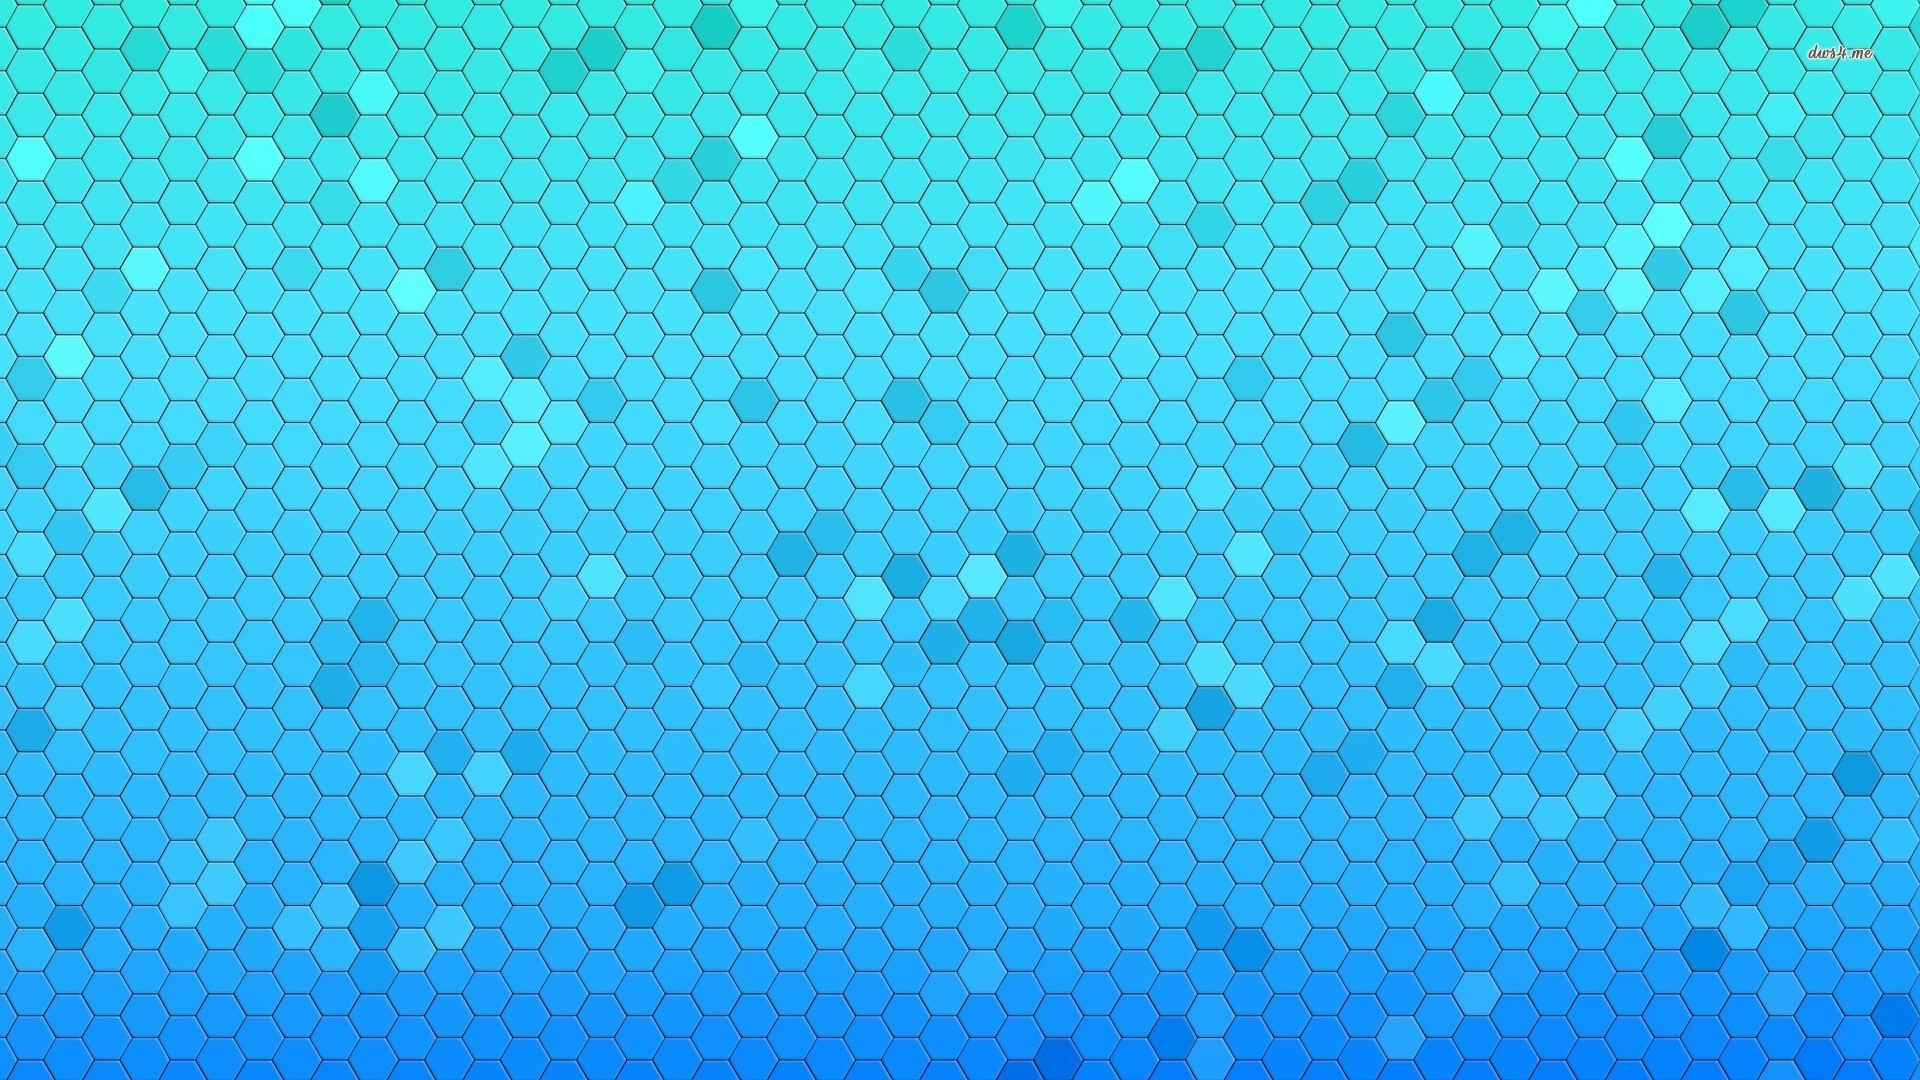 Res: 1920x1080, Blue Honeycomb Pattern Blue Honeycomb Pattern wallpapers HD free - 390205